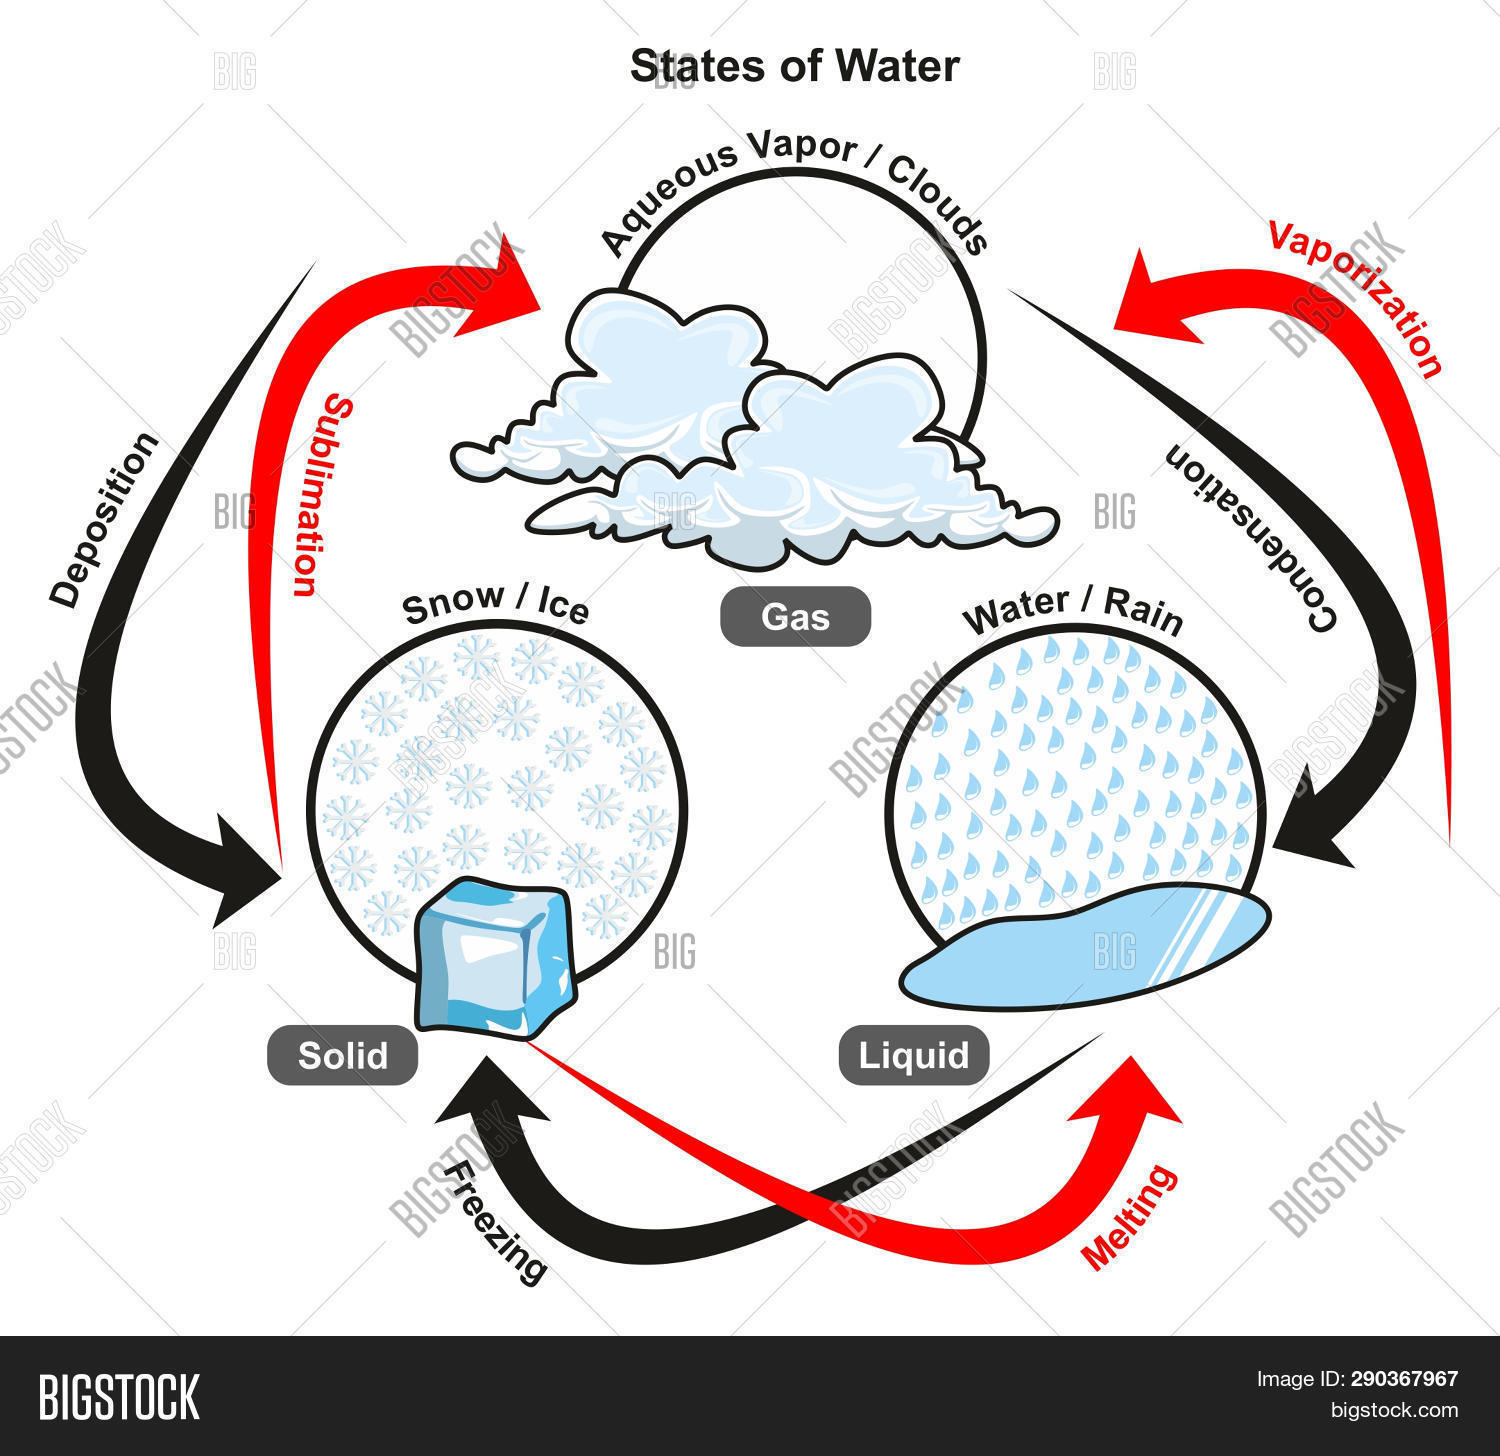 states of water infographic diagram including gas liquid and solid also  showing all processes vaporization condensation